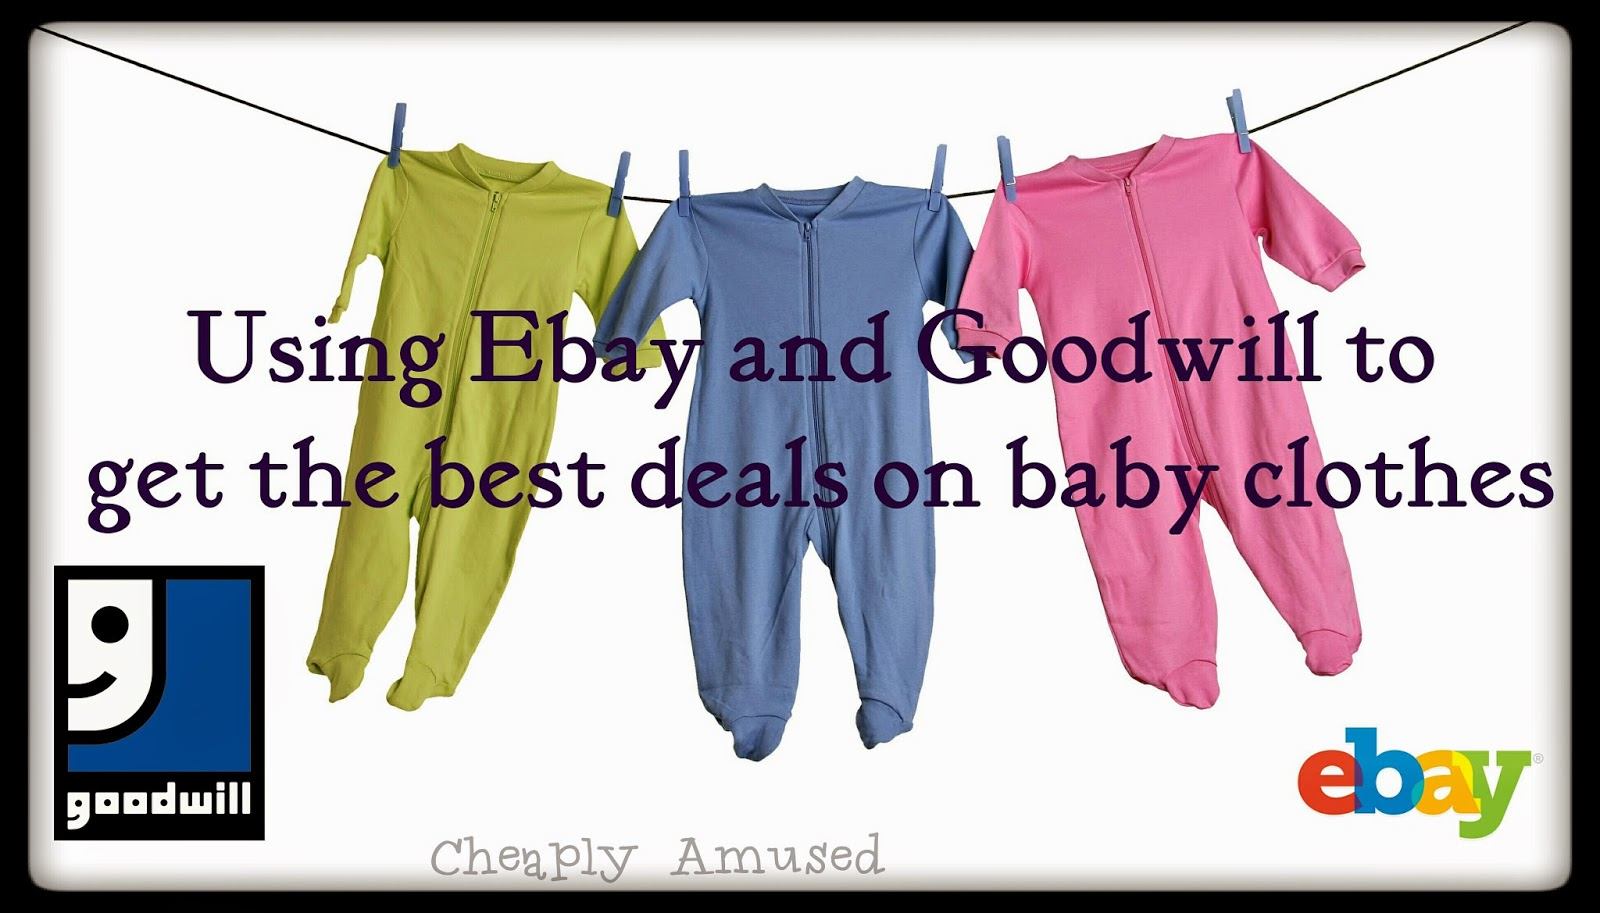 The best deal for baby gear is free. You'll probably get offered some hand-me-downs from friends and family, especially if you know people who have toddlers or preschoolers. In fact, when parents decide that they don't want to have any more babies they can get quite generous with giving away baby items.